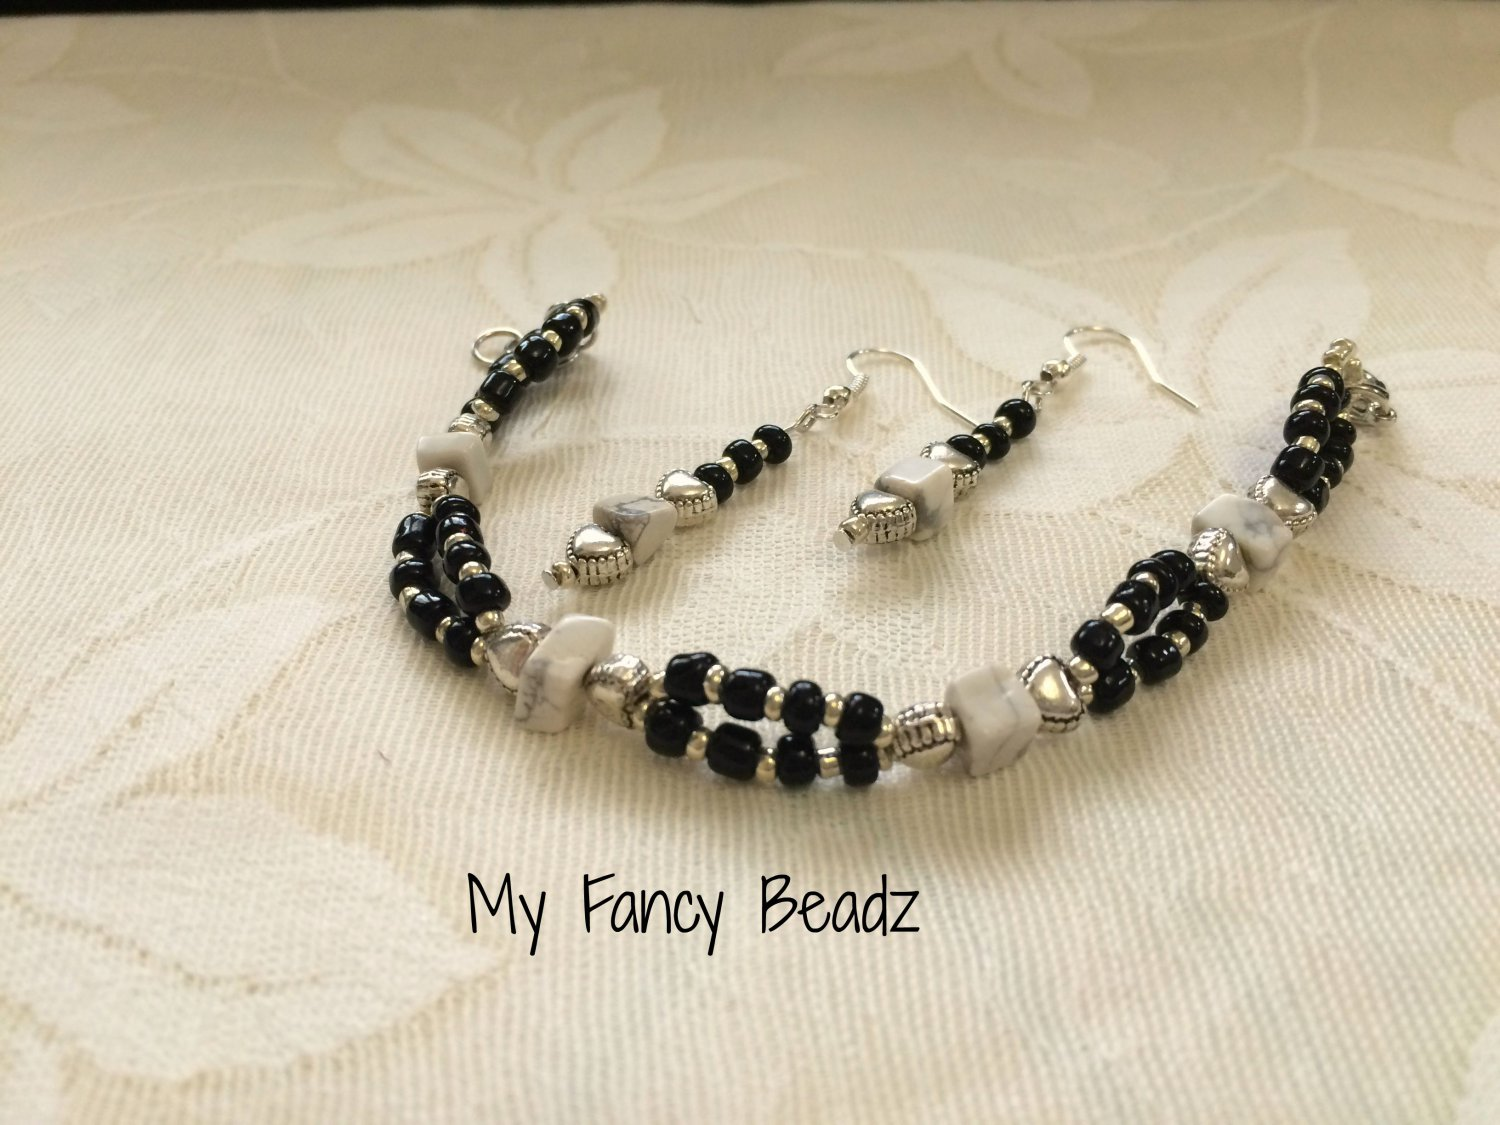 Black & White gemstone Bracelet and Earrings Set